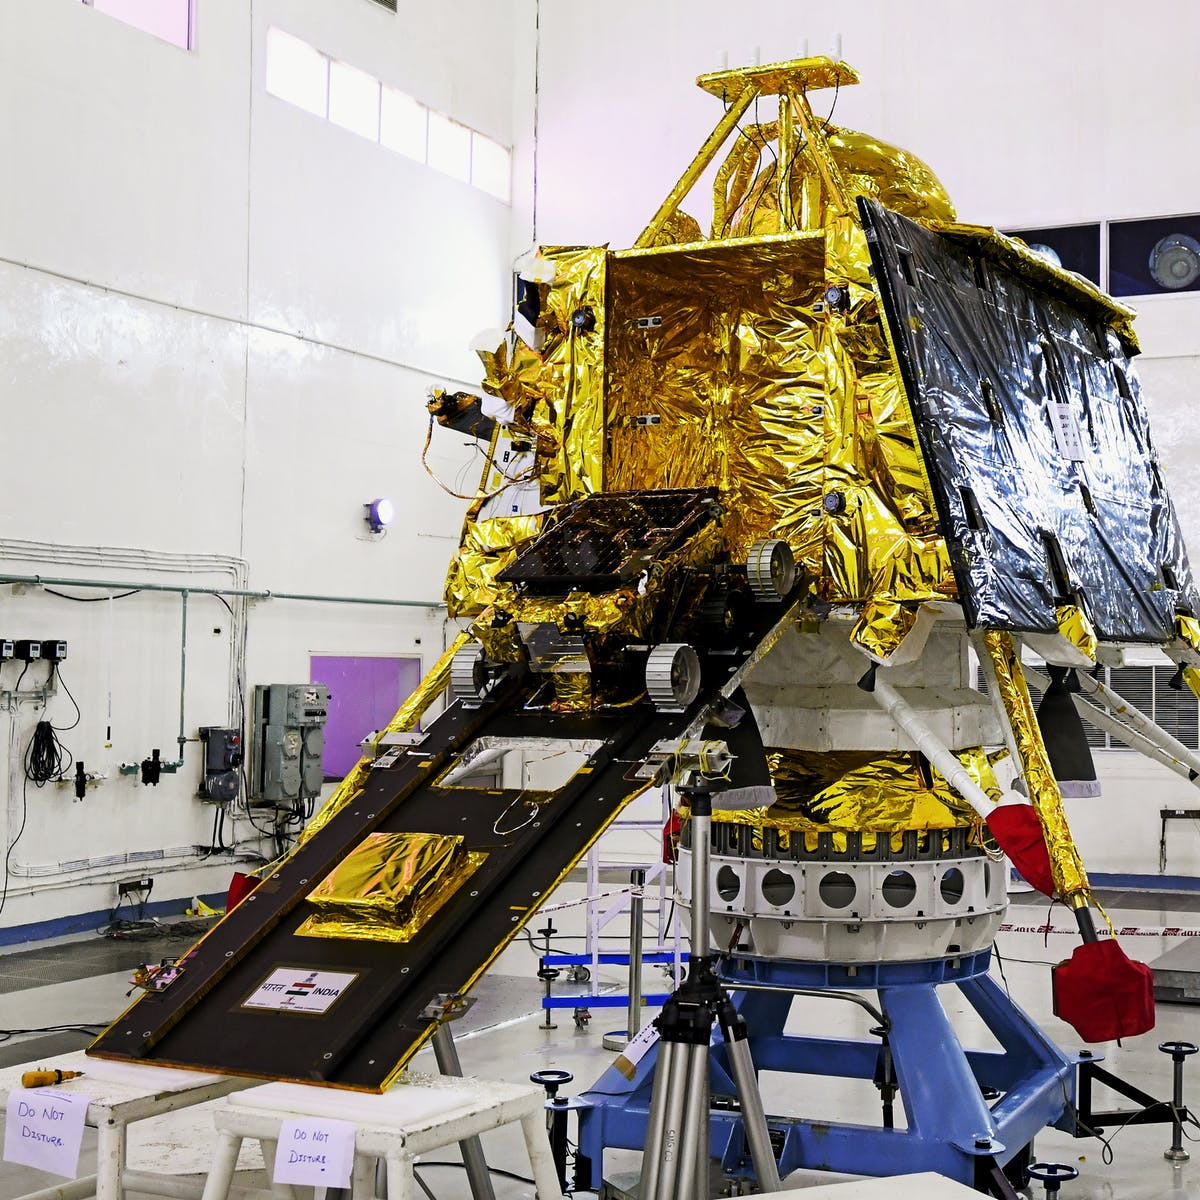 India's moon mission should be considered a success, and a